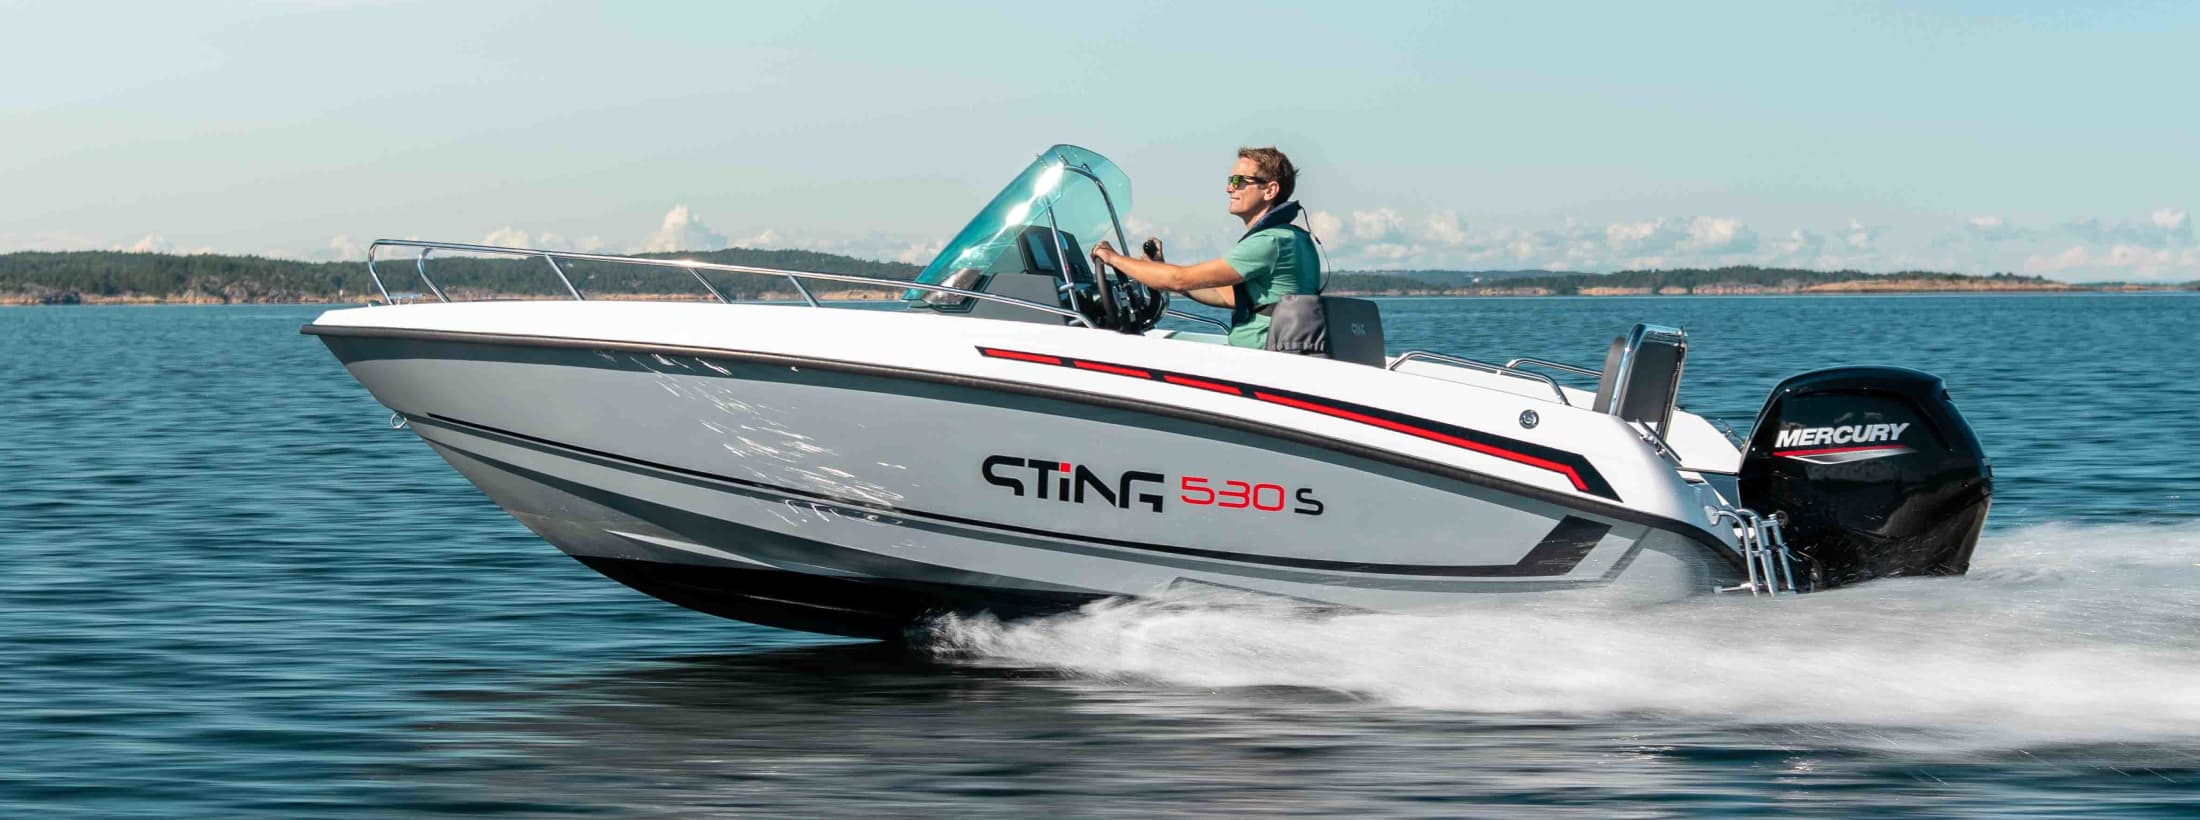 Sting 530 S Blackline at sea